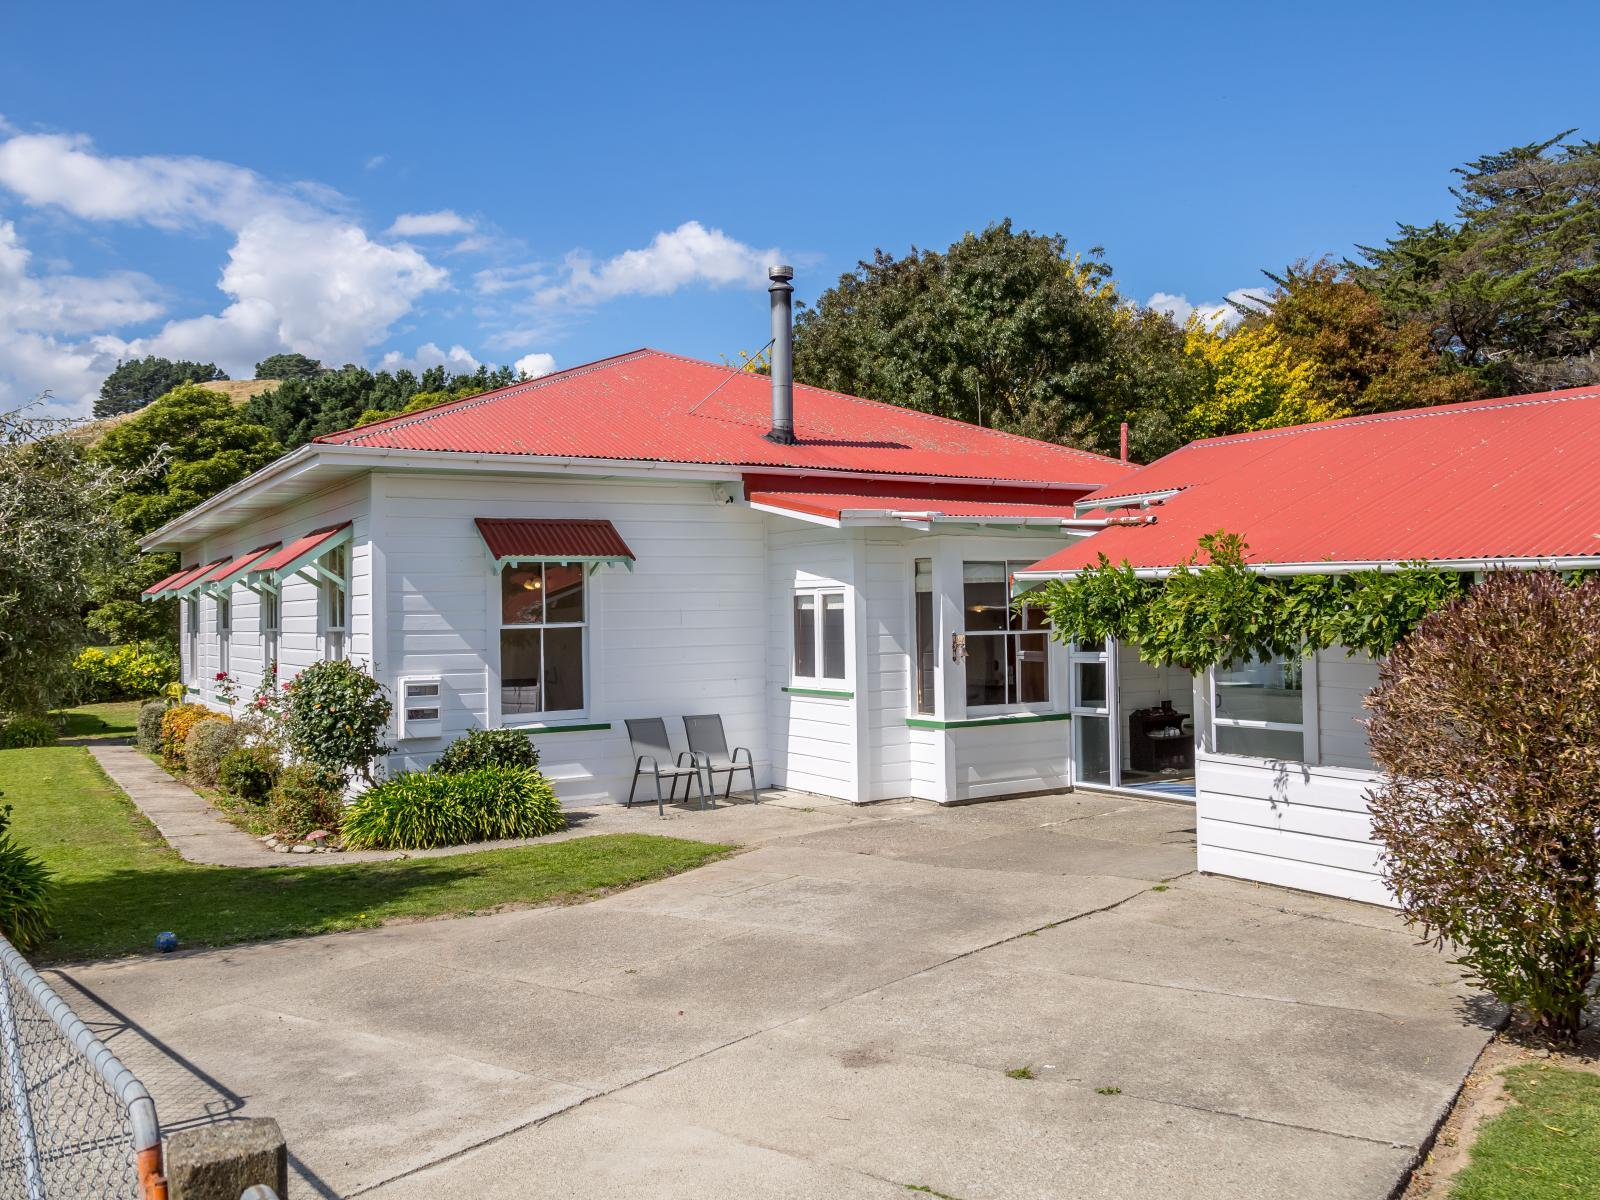 300 and 212 Hinemoa Valley Road, Pahiatua